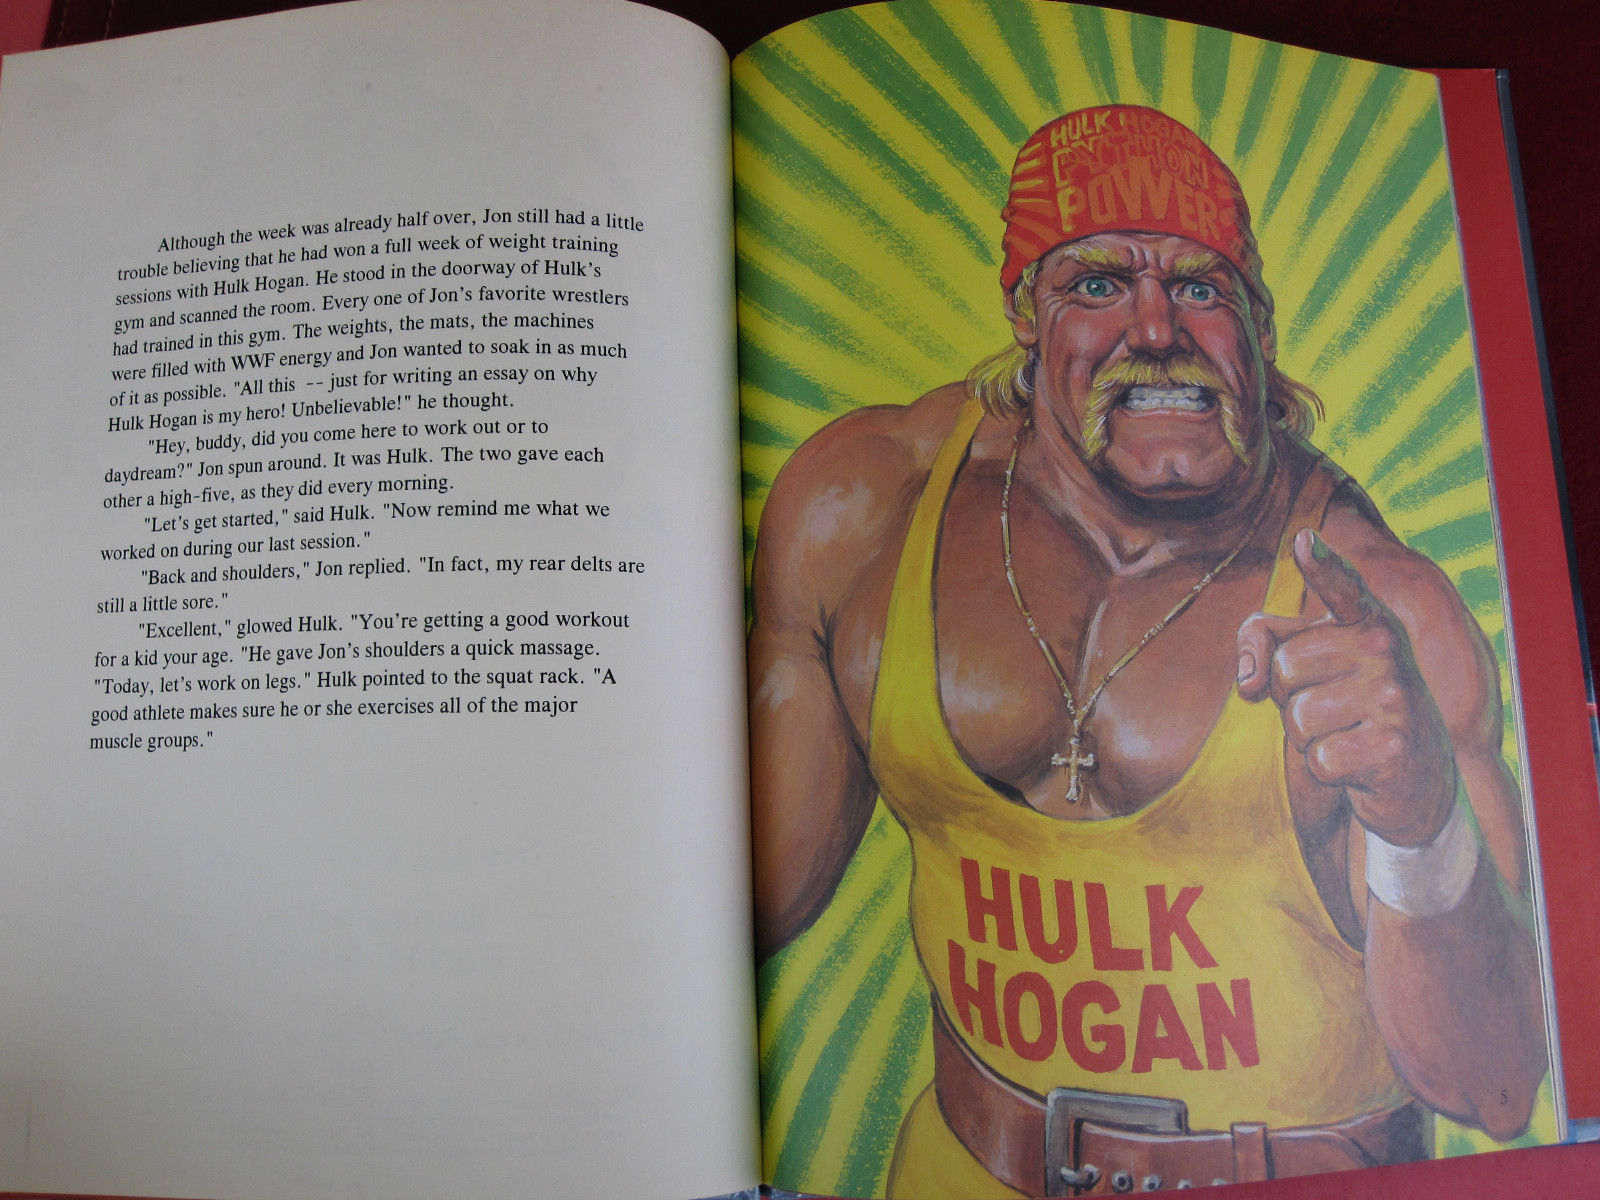 Hulk Hogan A True Champion book excerpt